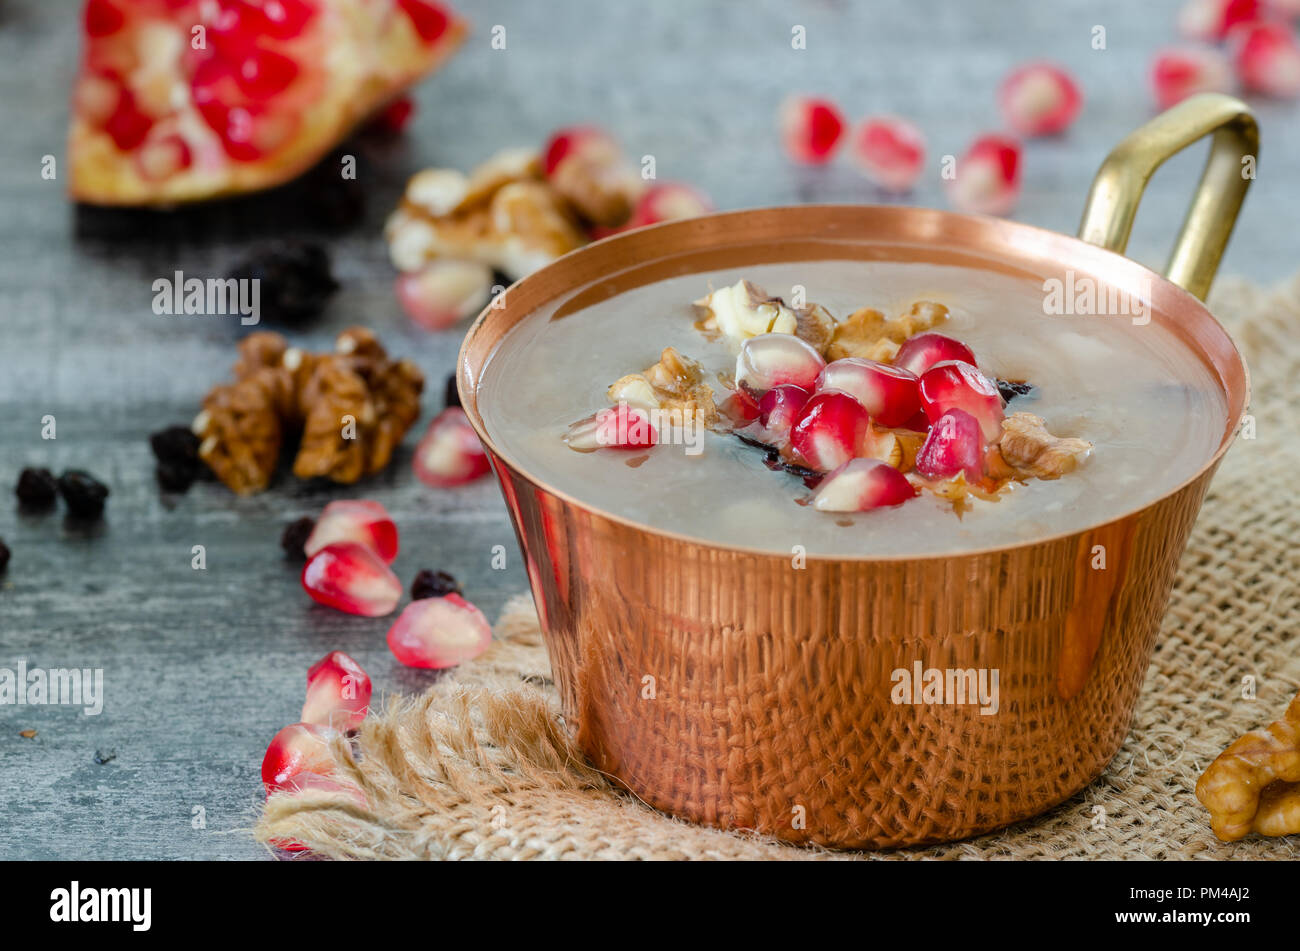 According to Islam, the tenth day of the month of Muharram. When Noah came ashore after the Great Flood, he made this dessert with the last ingredient - Stock Image